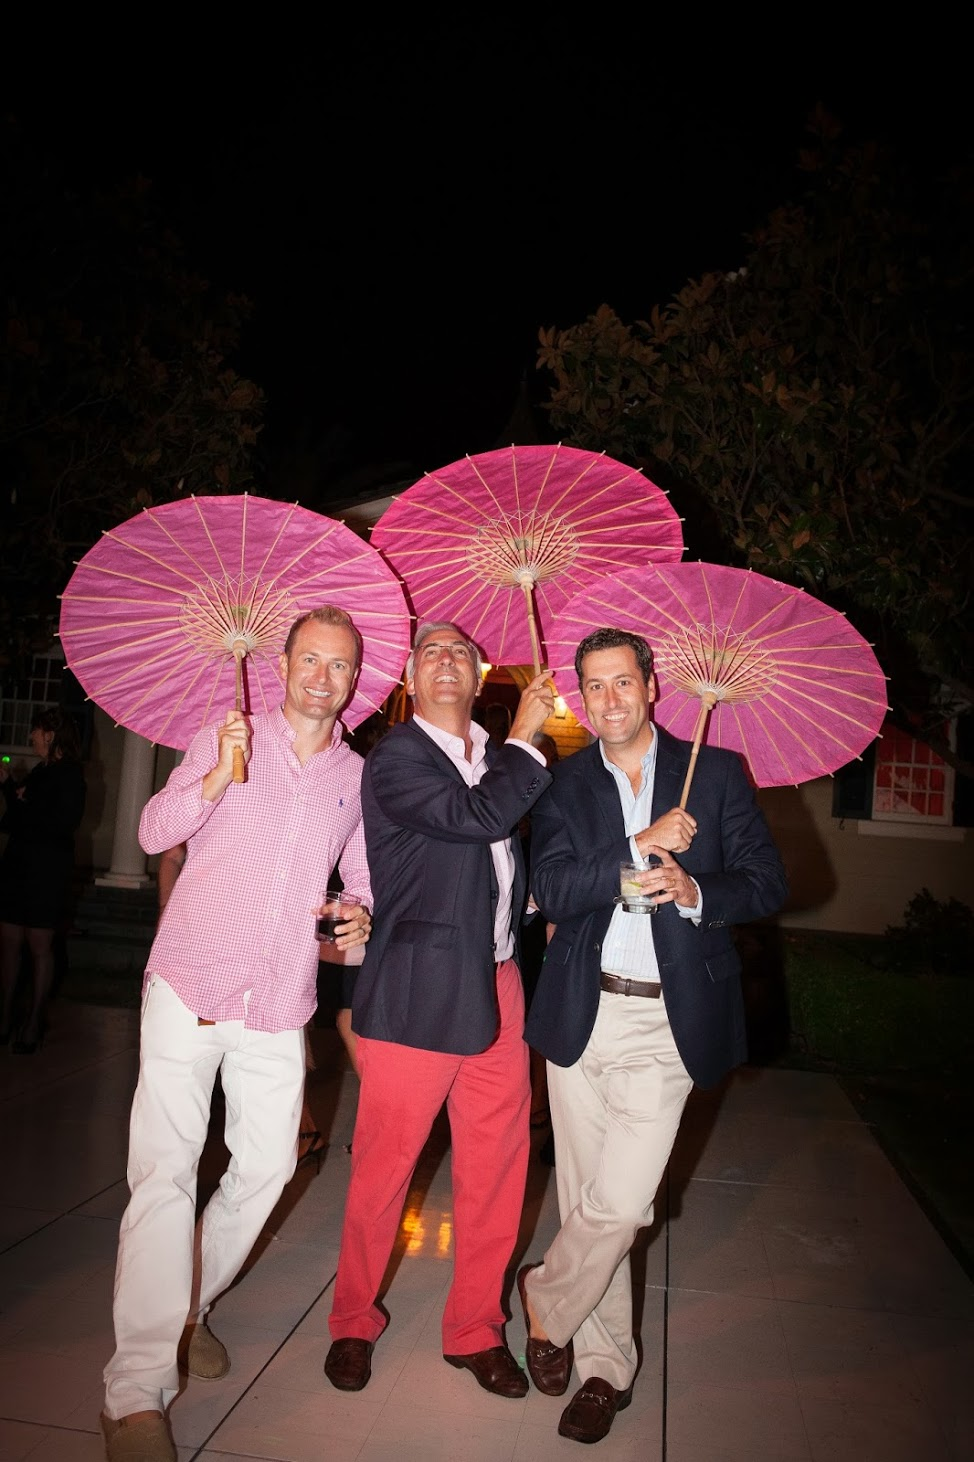 www.FeliciEvents | Pink Polo Party | Funraising Event | Felici Fundraiser | Polo Theme | Clarissa Koenig Photography | Pink Parasols